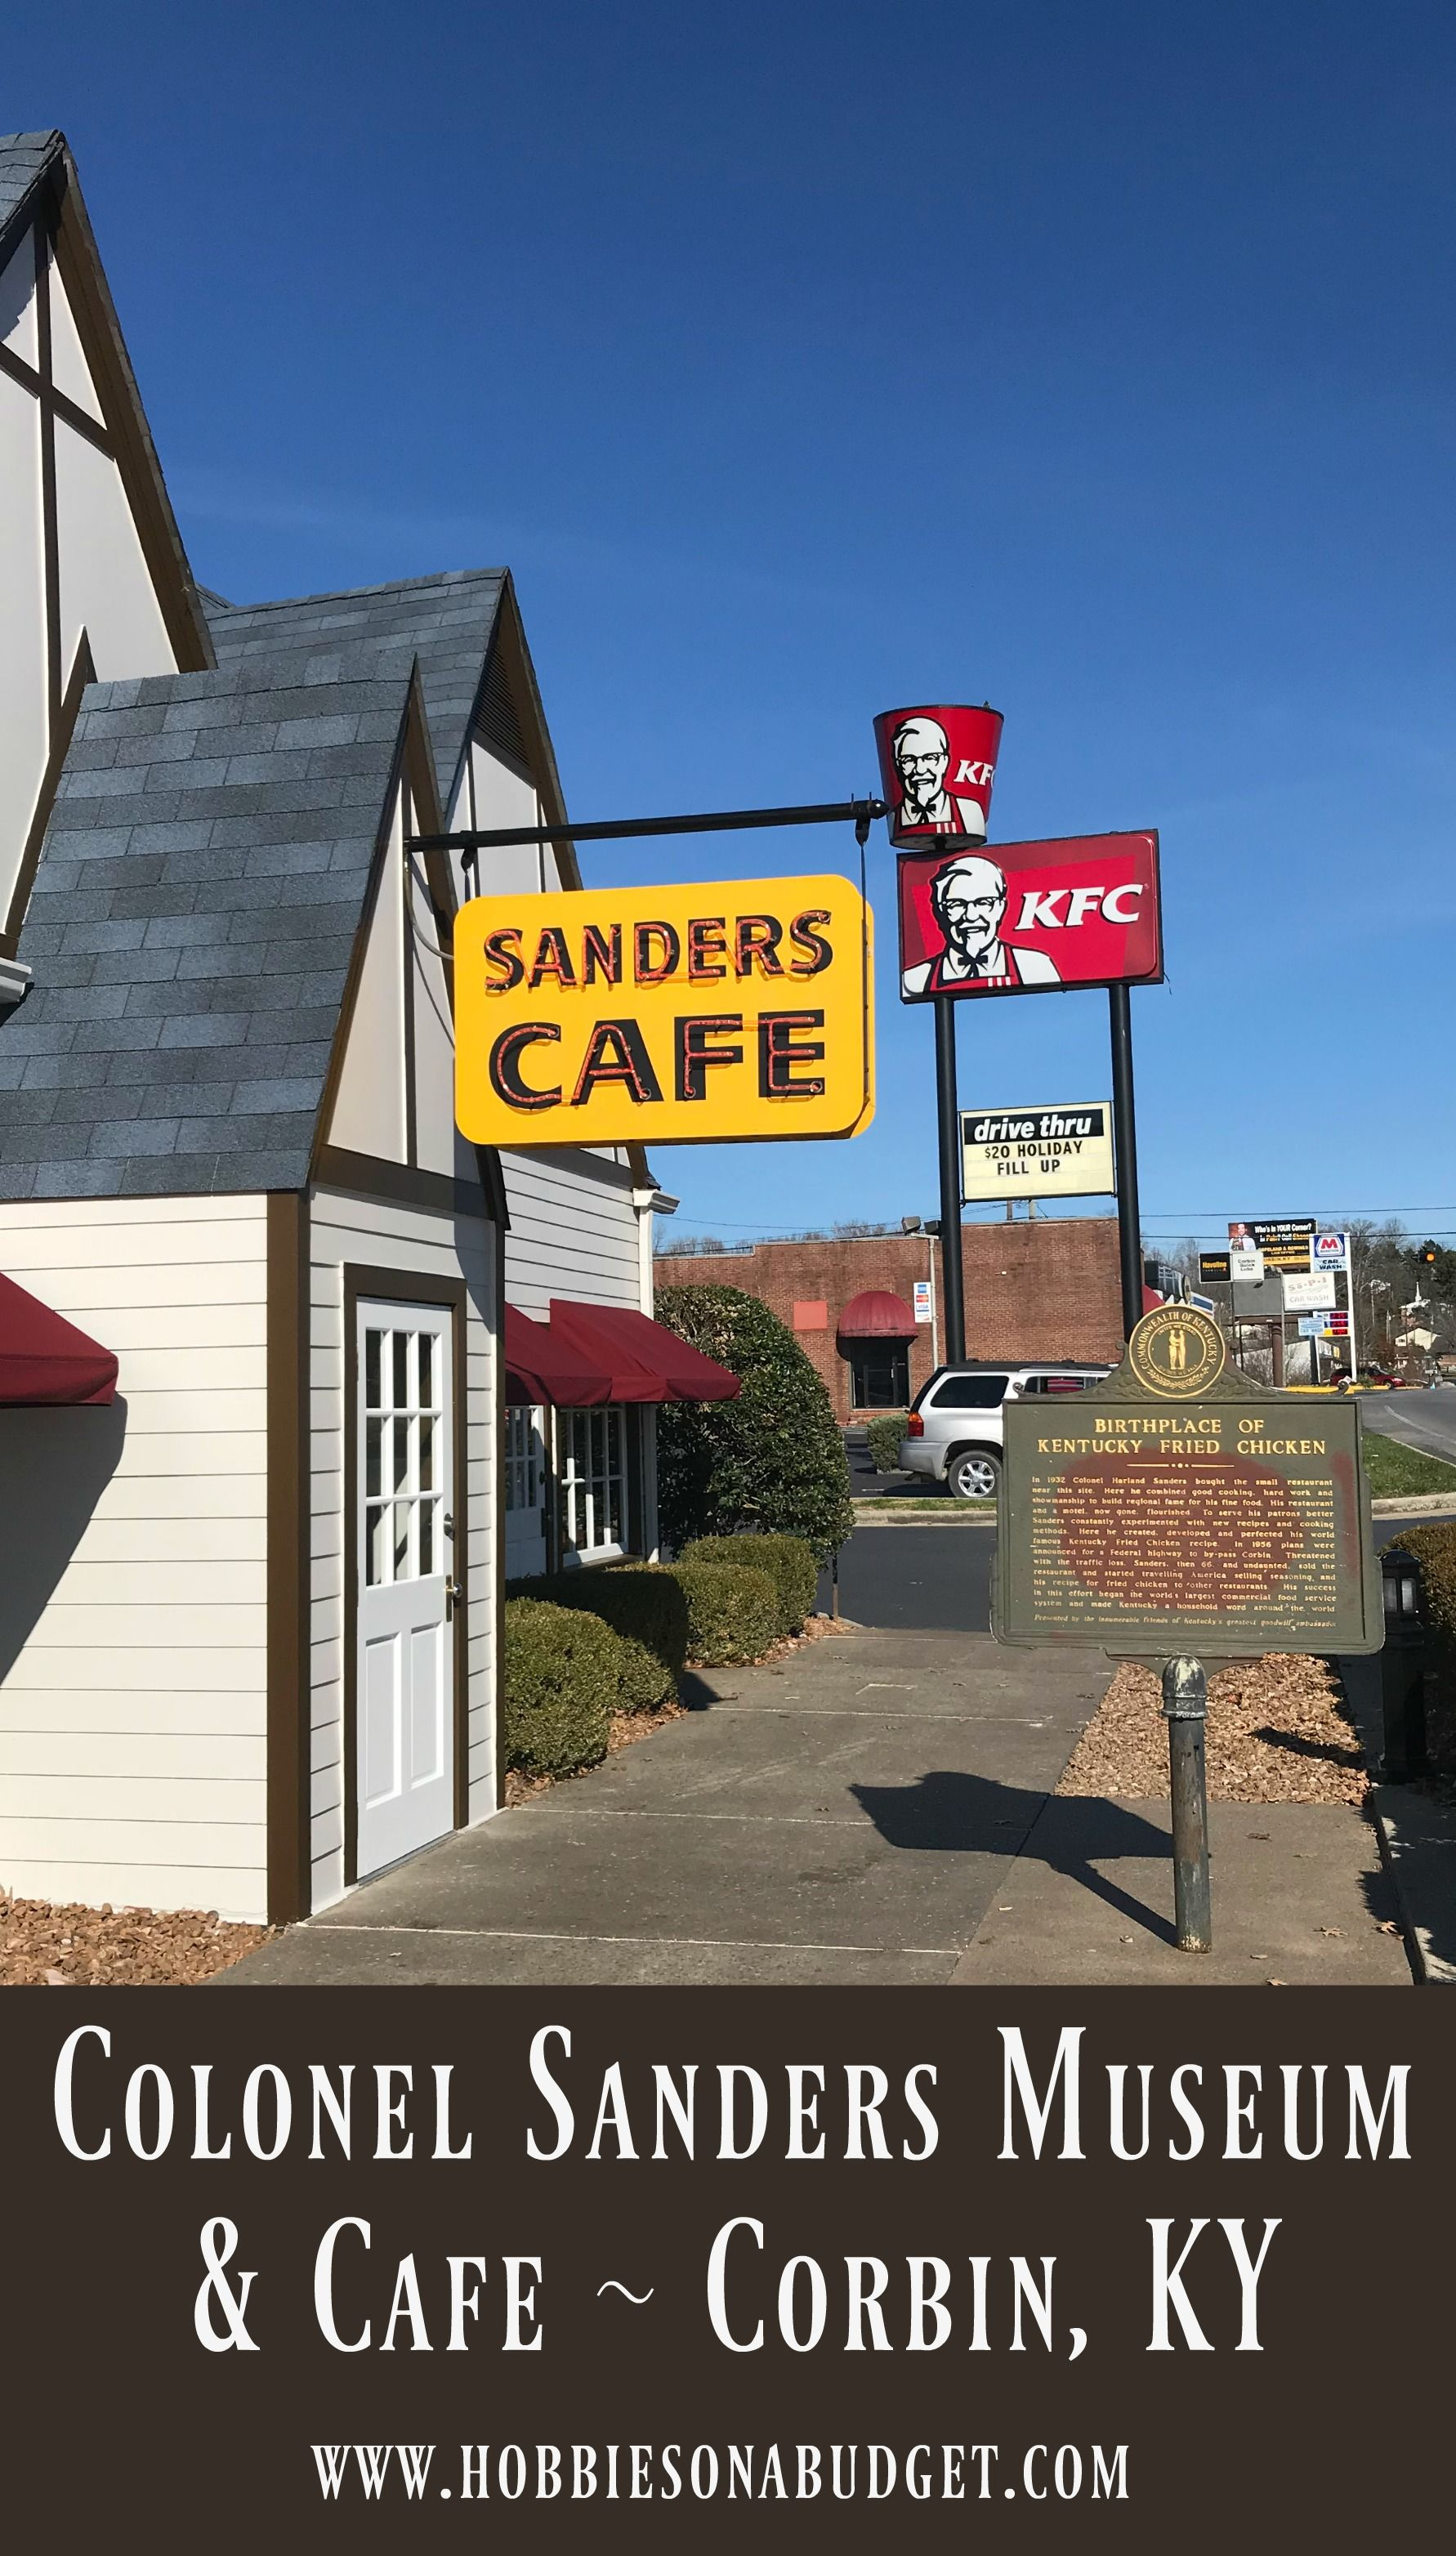 Colonel Sanders Cafe Museum Corbin Ky Hobbies On A Budget Kentucky Vacation Kentucky Travel Midwest Travel Destinations